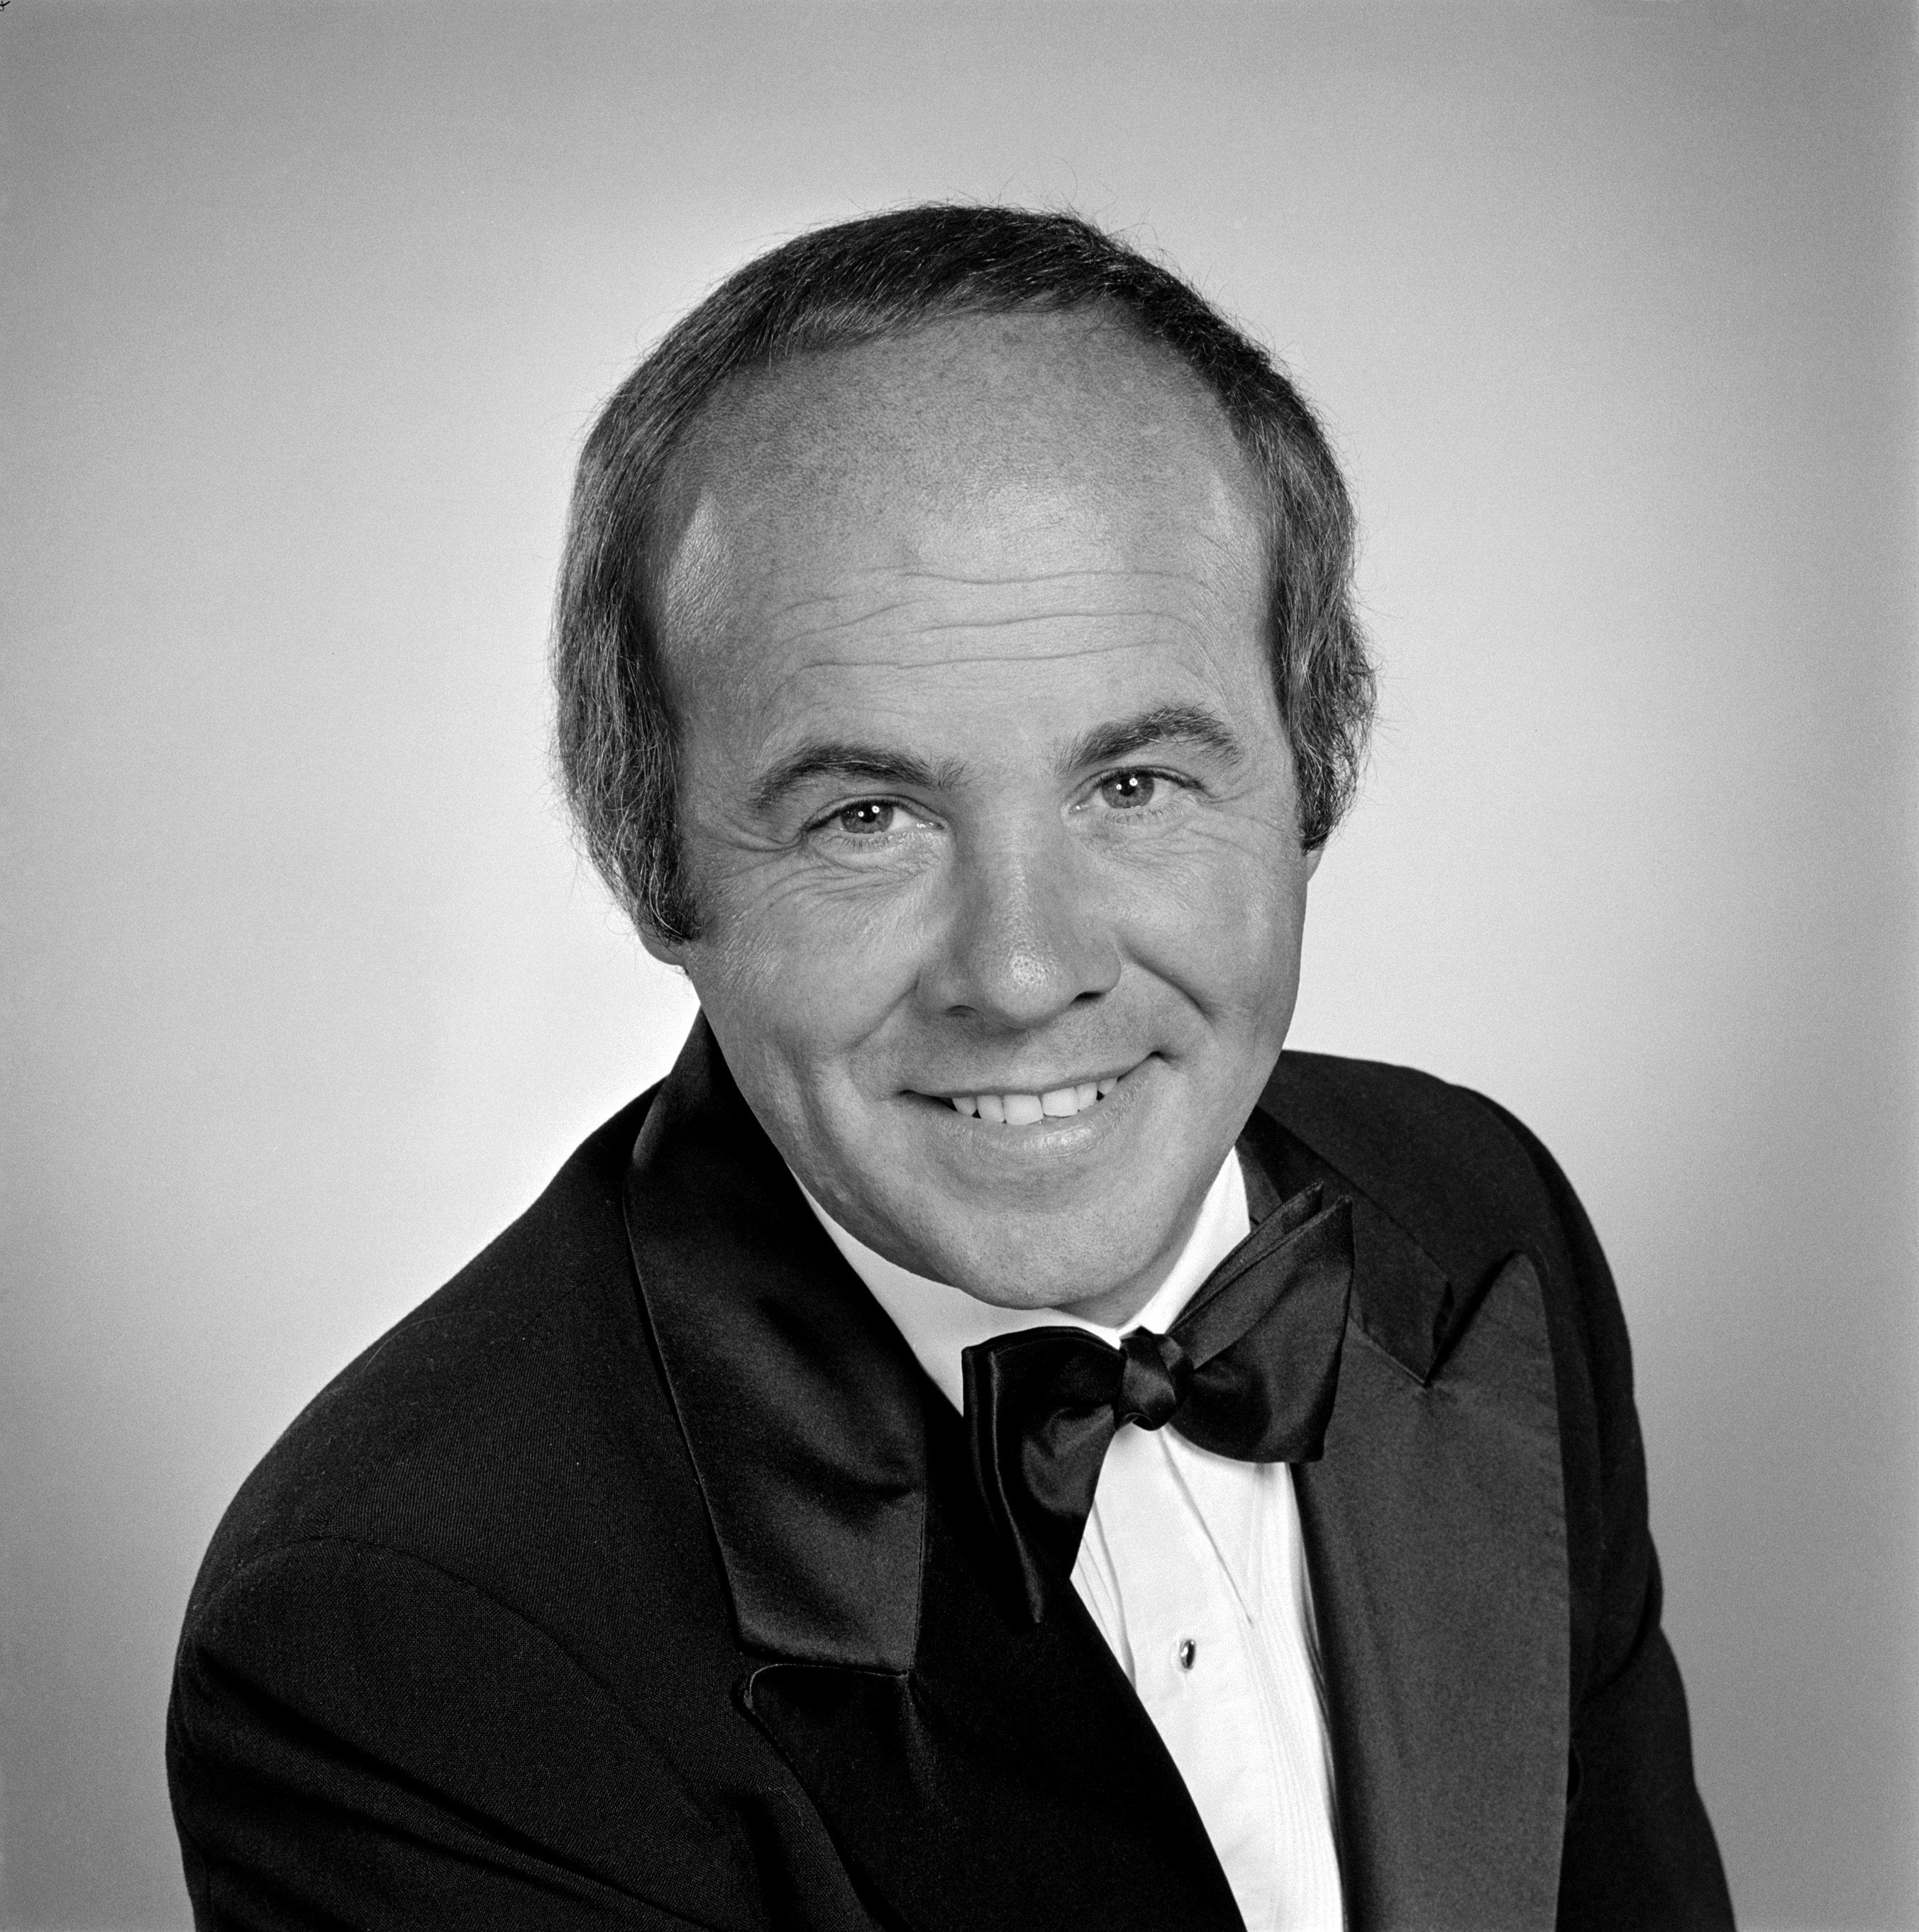 what did tim conway die from